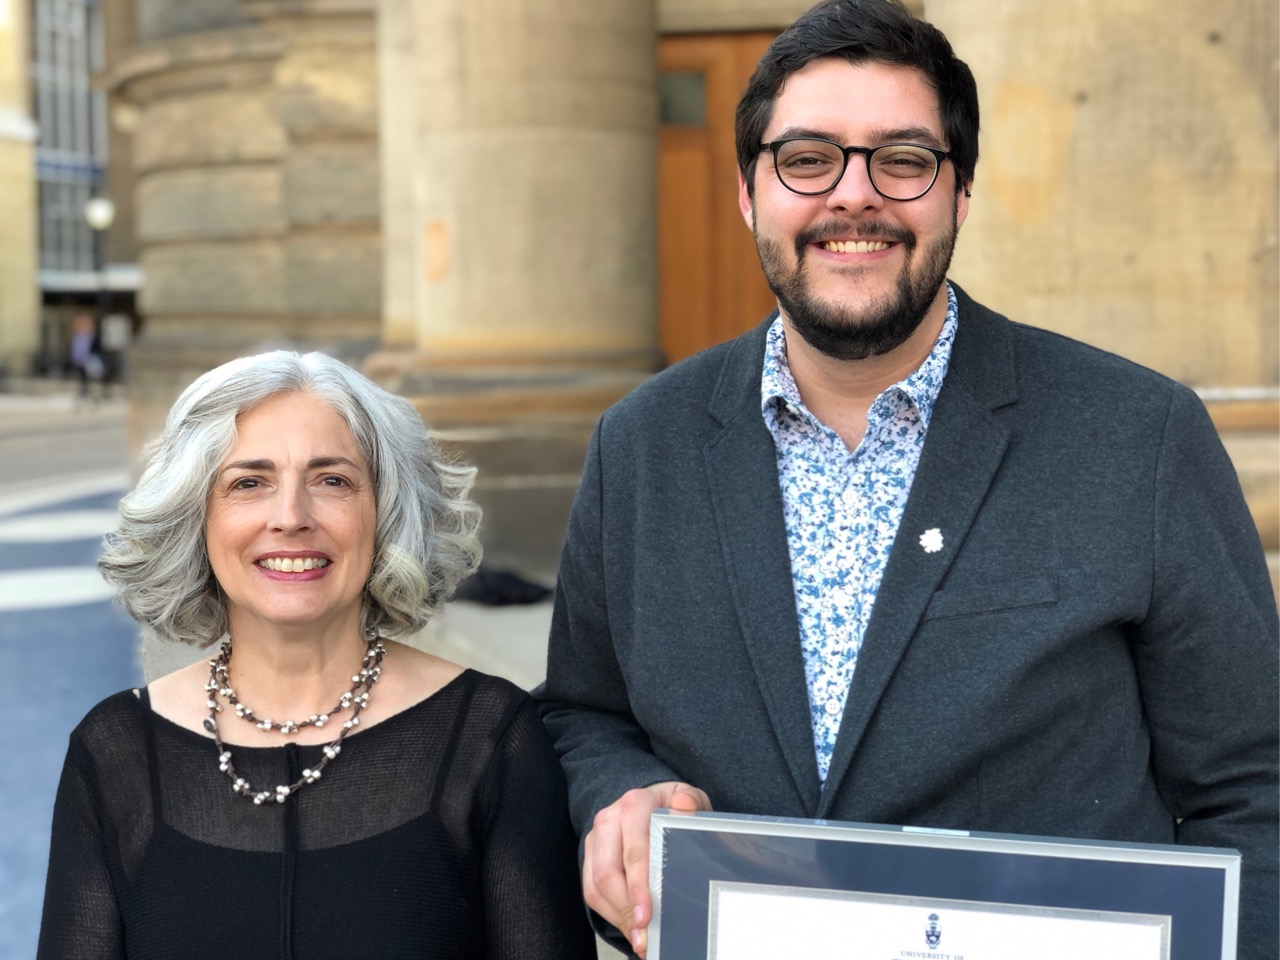 Prof. Jodie Jenkinson and MScBMC student Alex Young outside Convocation Hall on April 22, 2019.